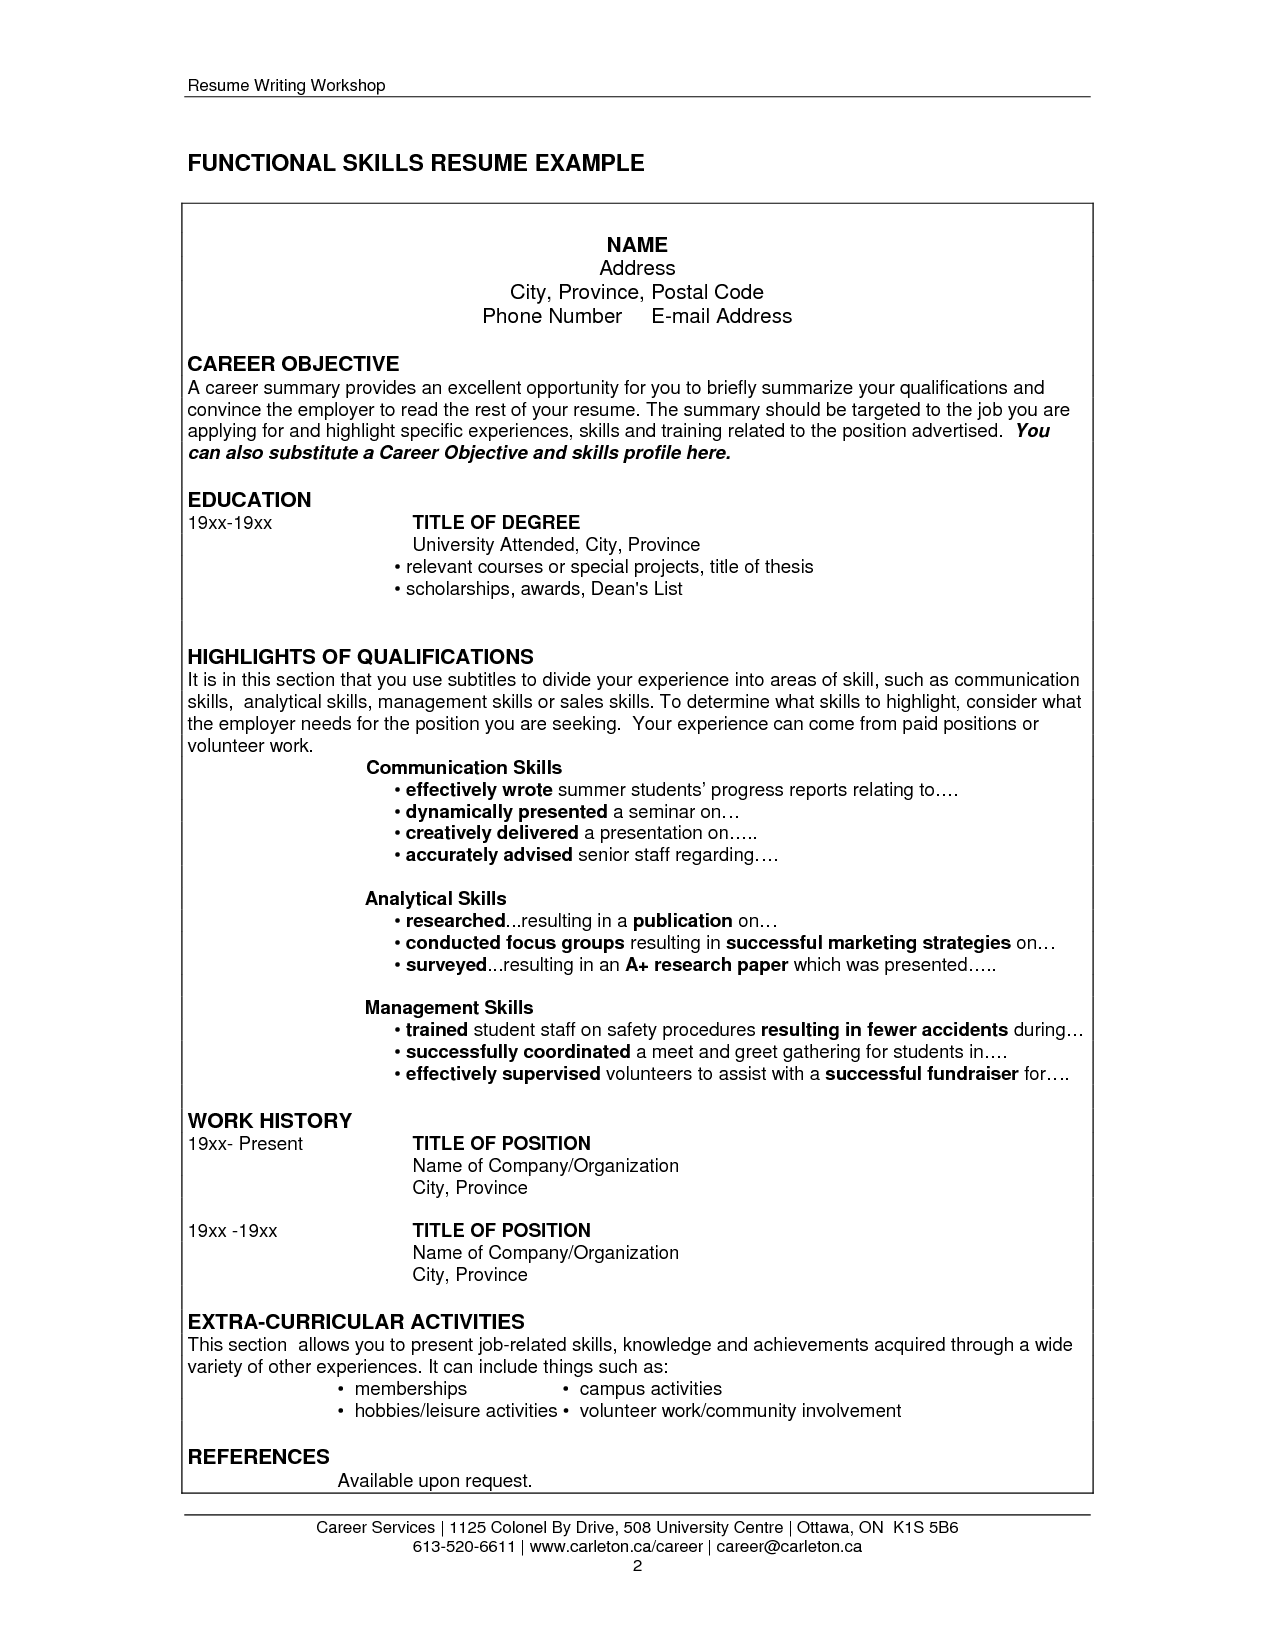 Skill Resume Template Enchanting Image Result For Skills Resume Format  Business  Pinterest